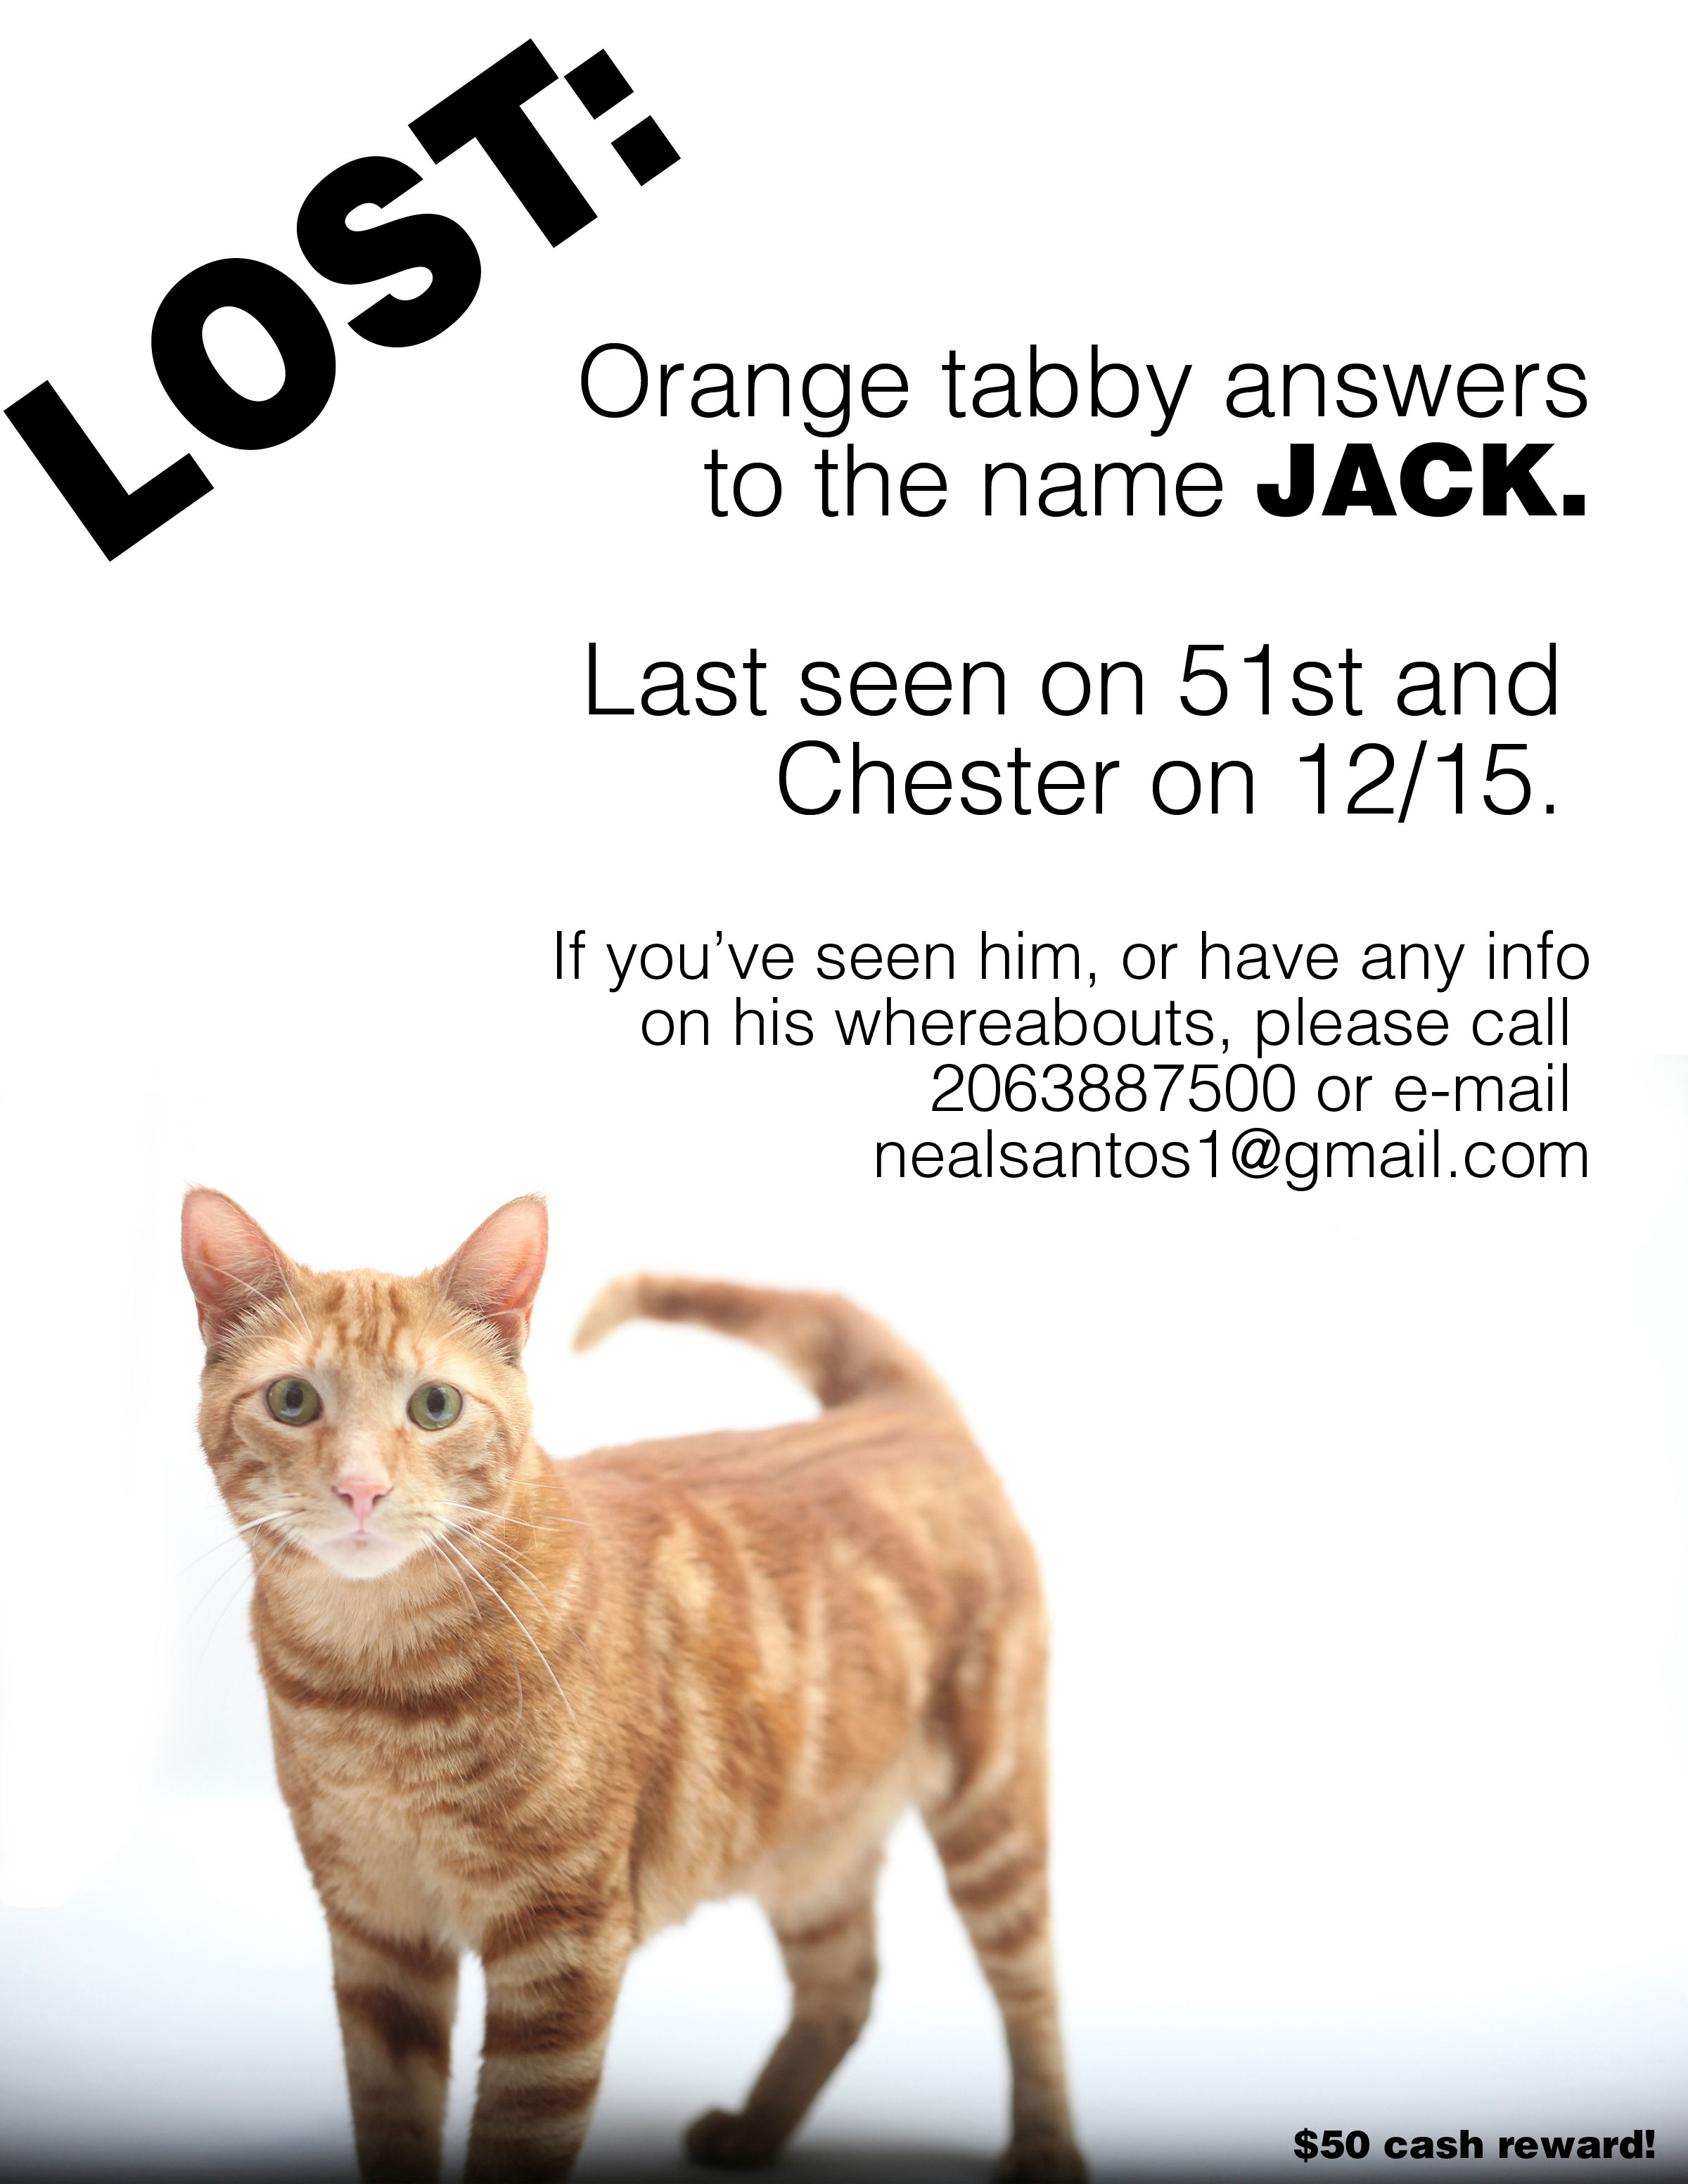 ... cat missing from 45th and osage july 23 2013 orange tabby cat frankie